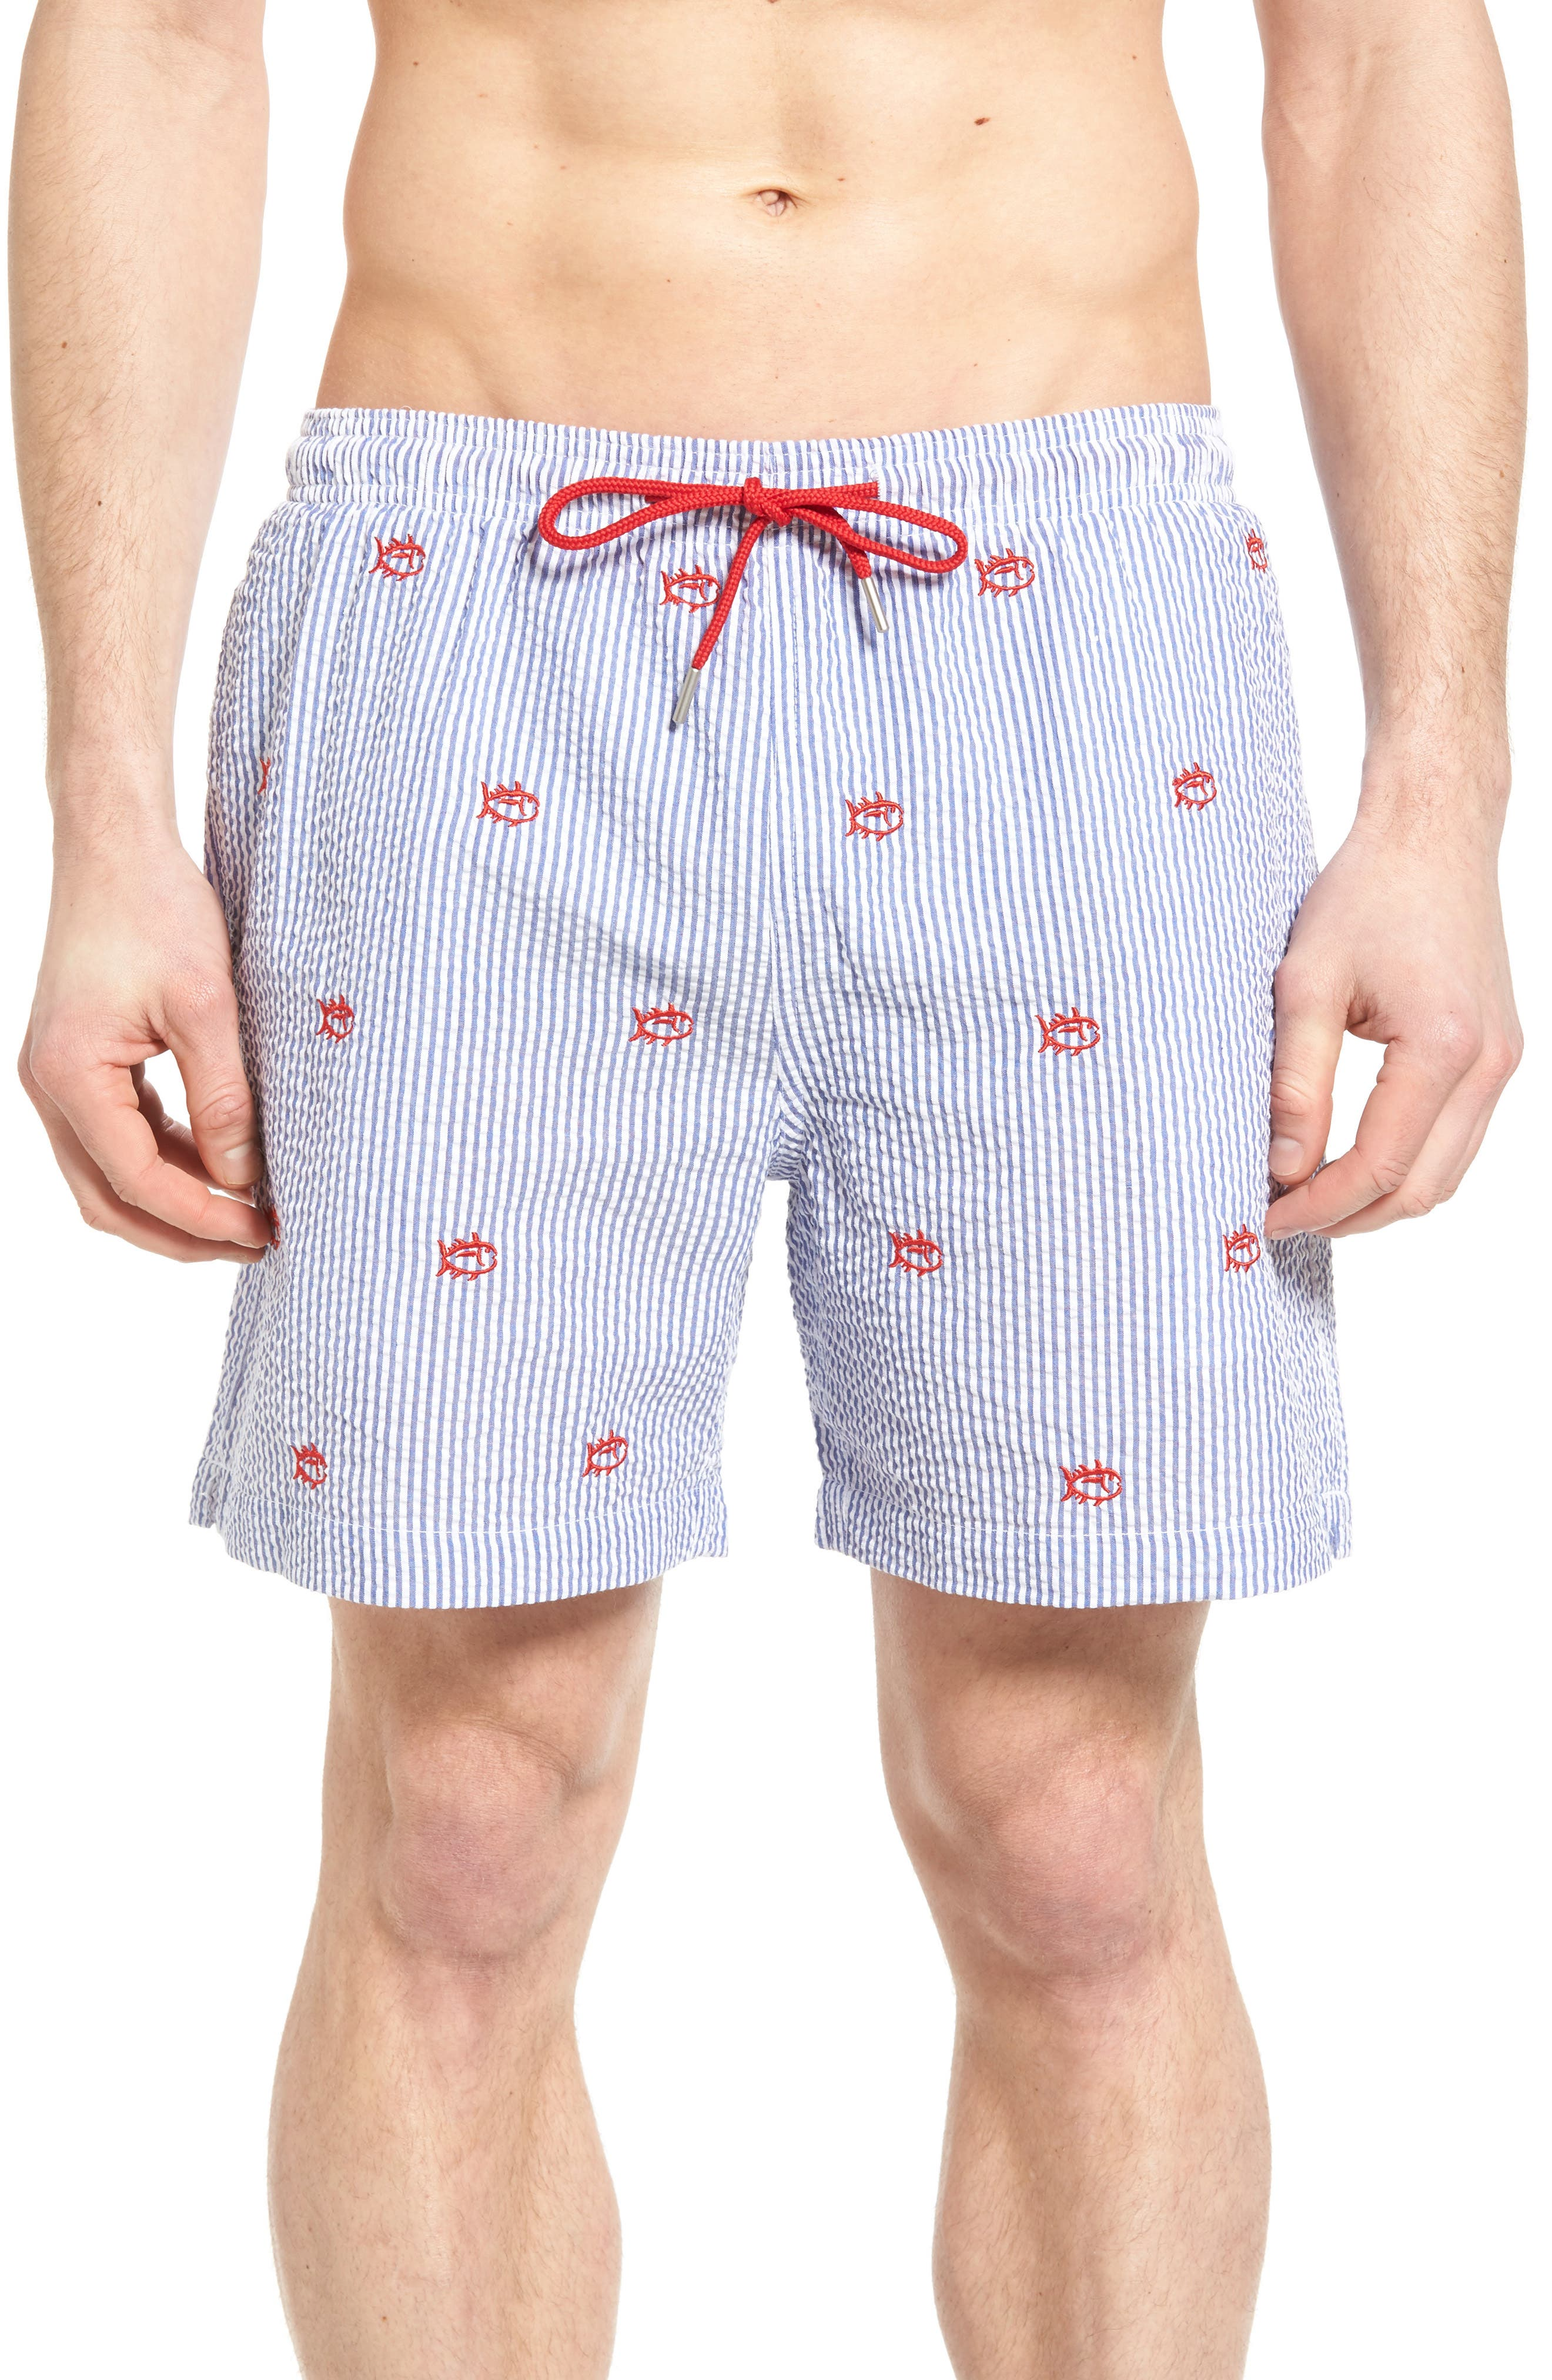 Southern Tide Seersucker Swim Trunks